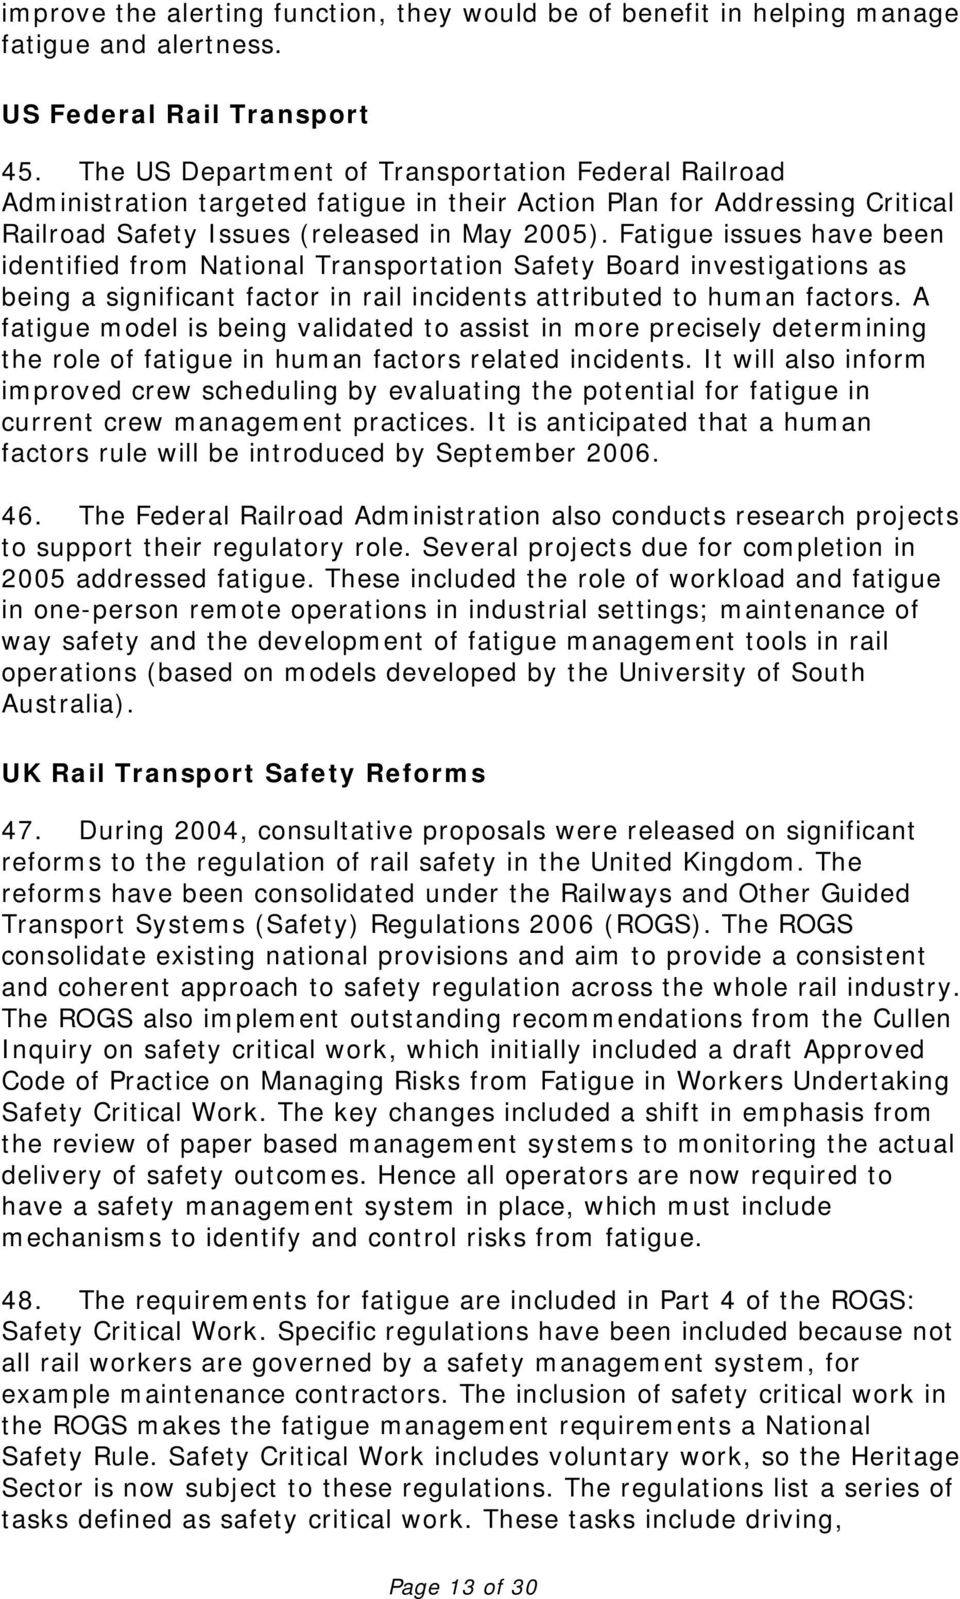 Fatigue issues have been identified from National Transportation Safety Board investigations as being a significant factor in rail incidents attributed to human factors.